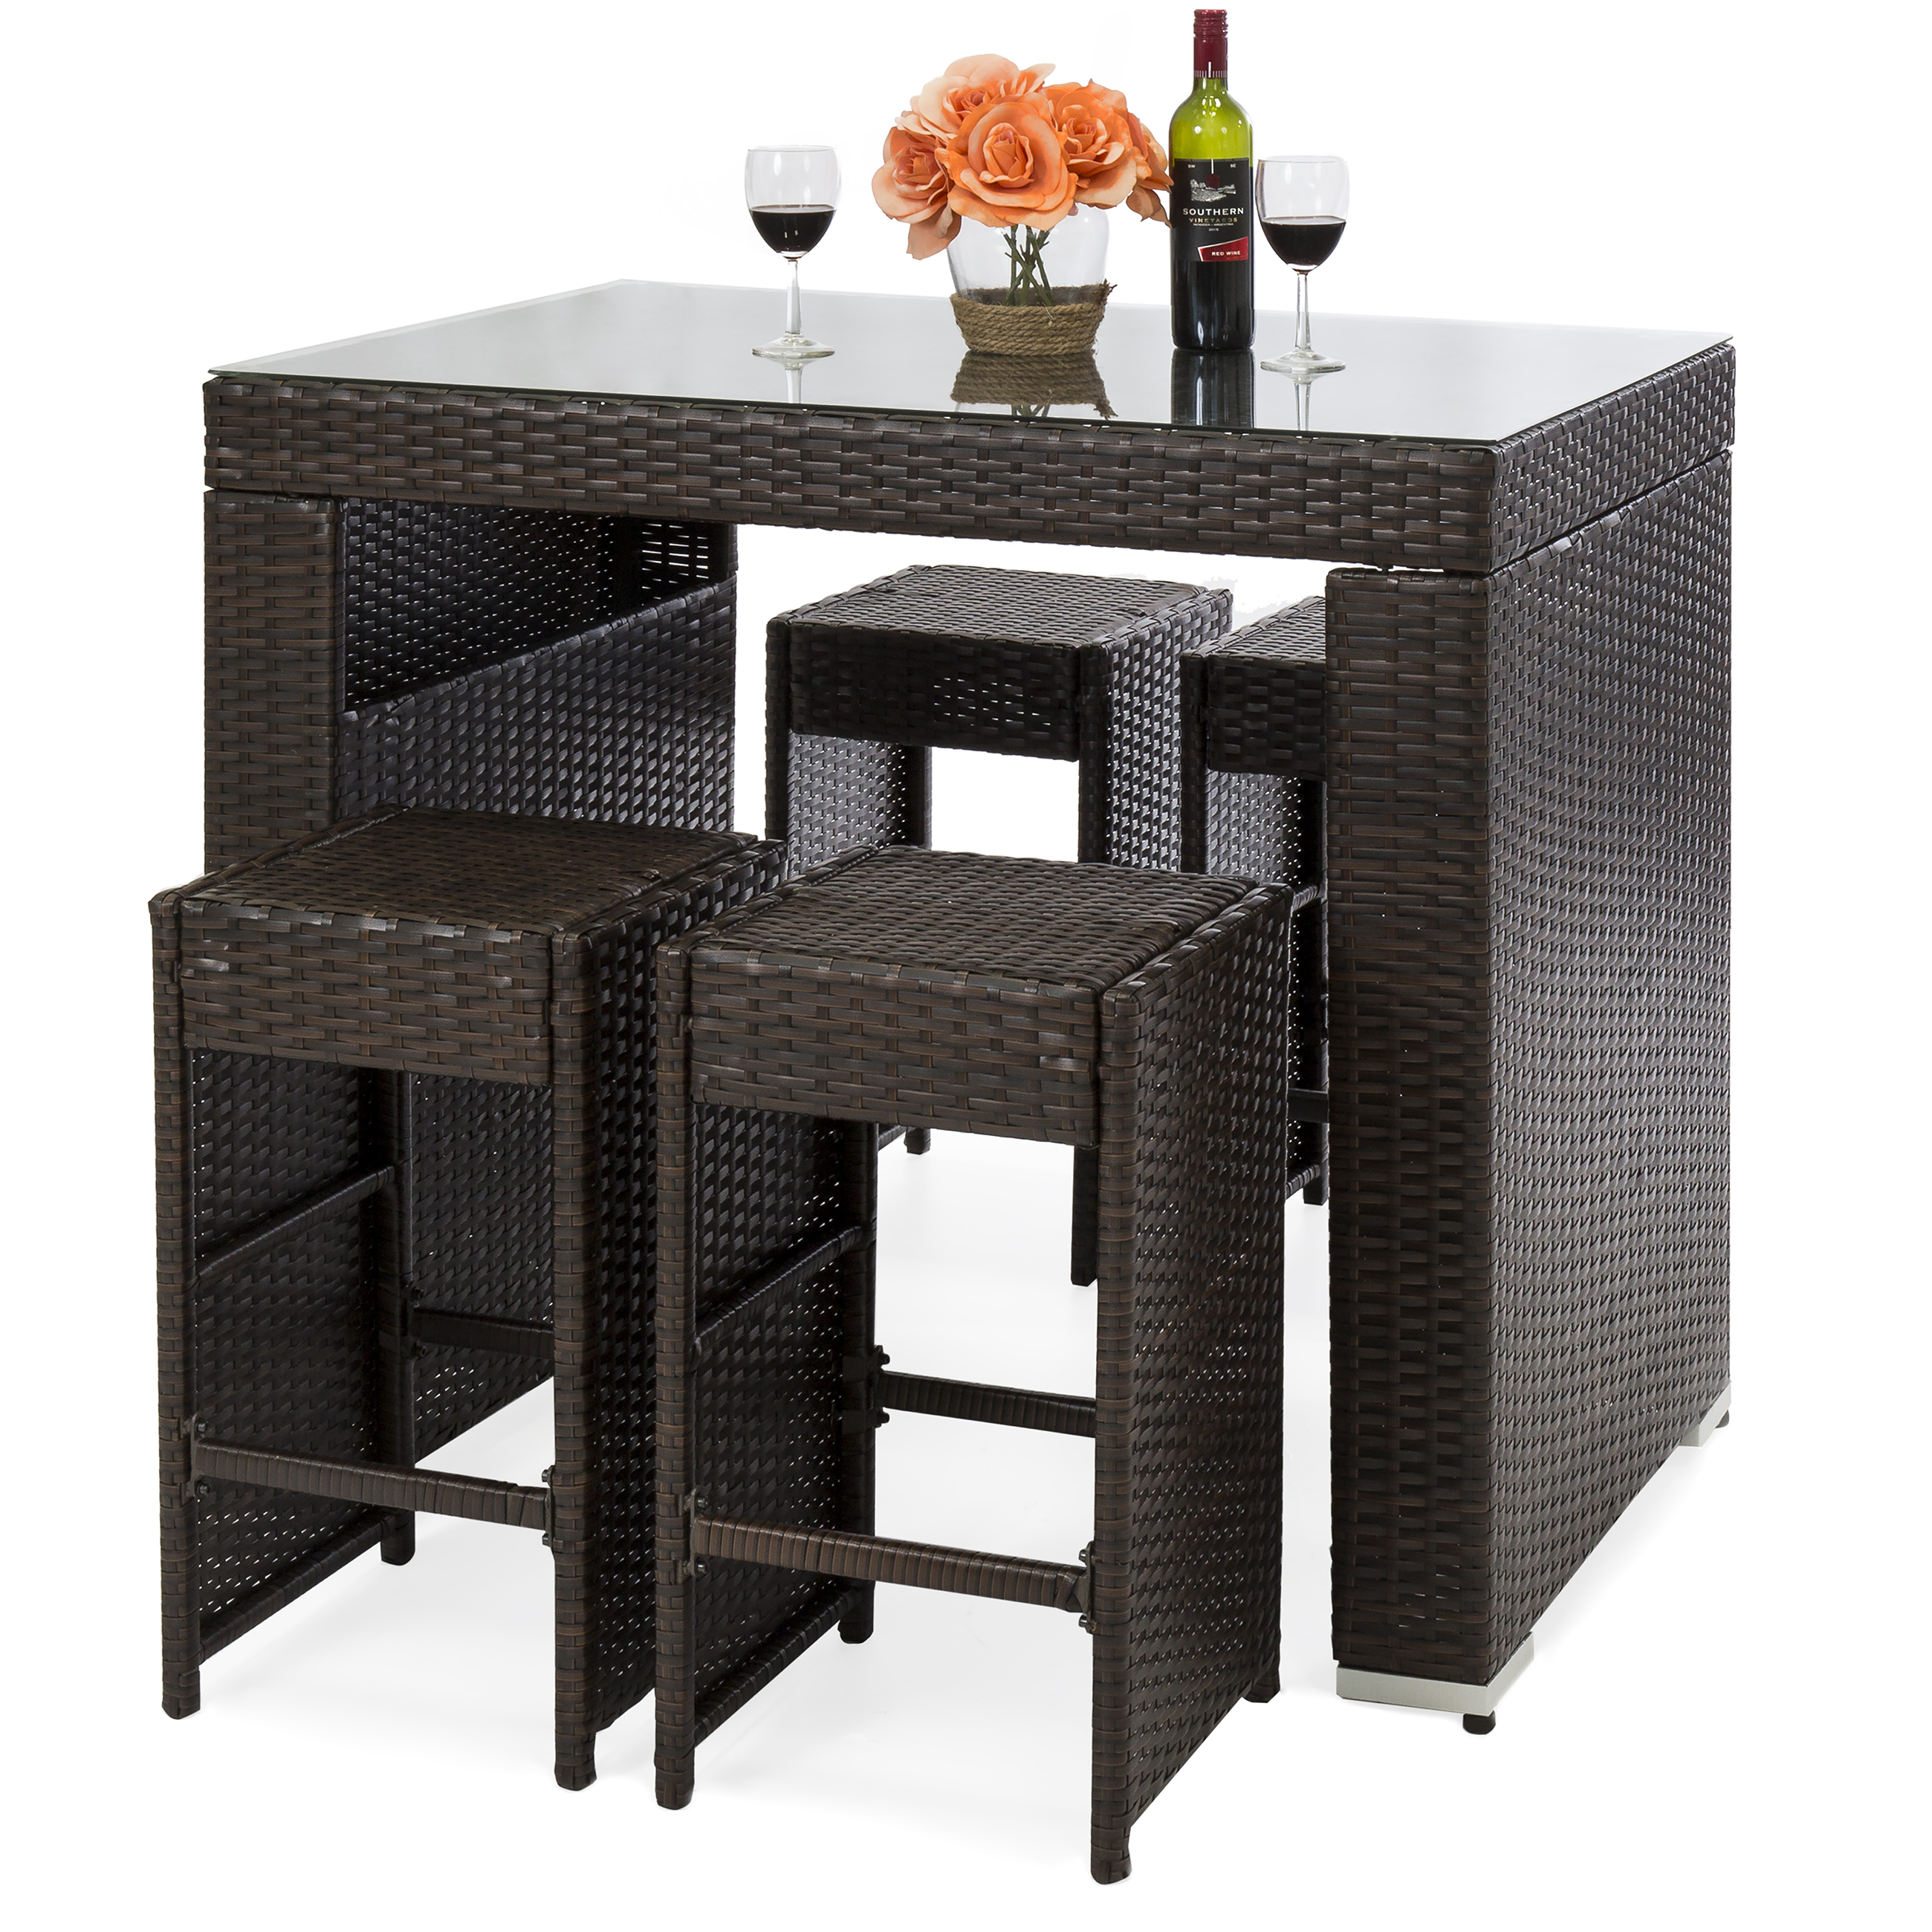 Best Choice Products 5-Piece Outdoor Wicker Dining Bar Table Set w/ Stools (Brown)